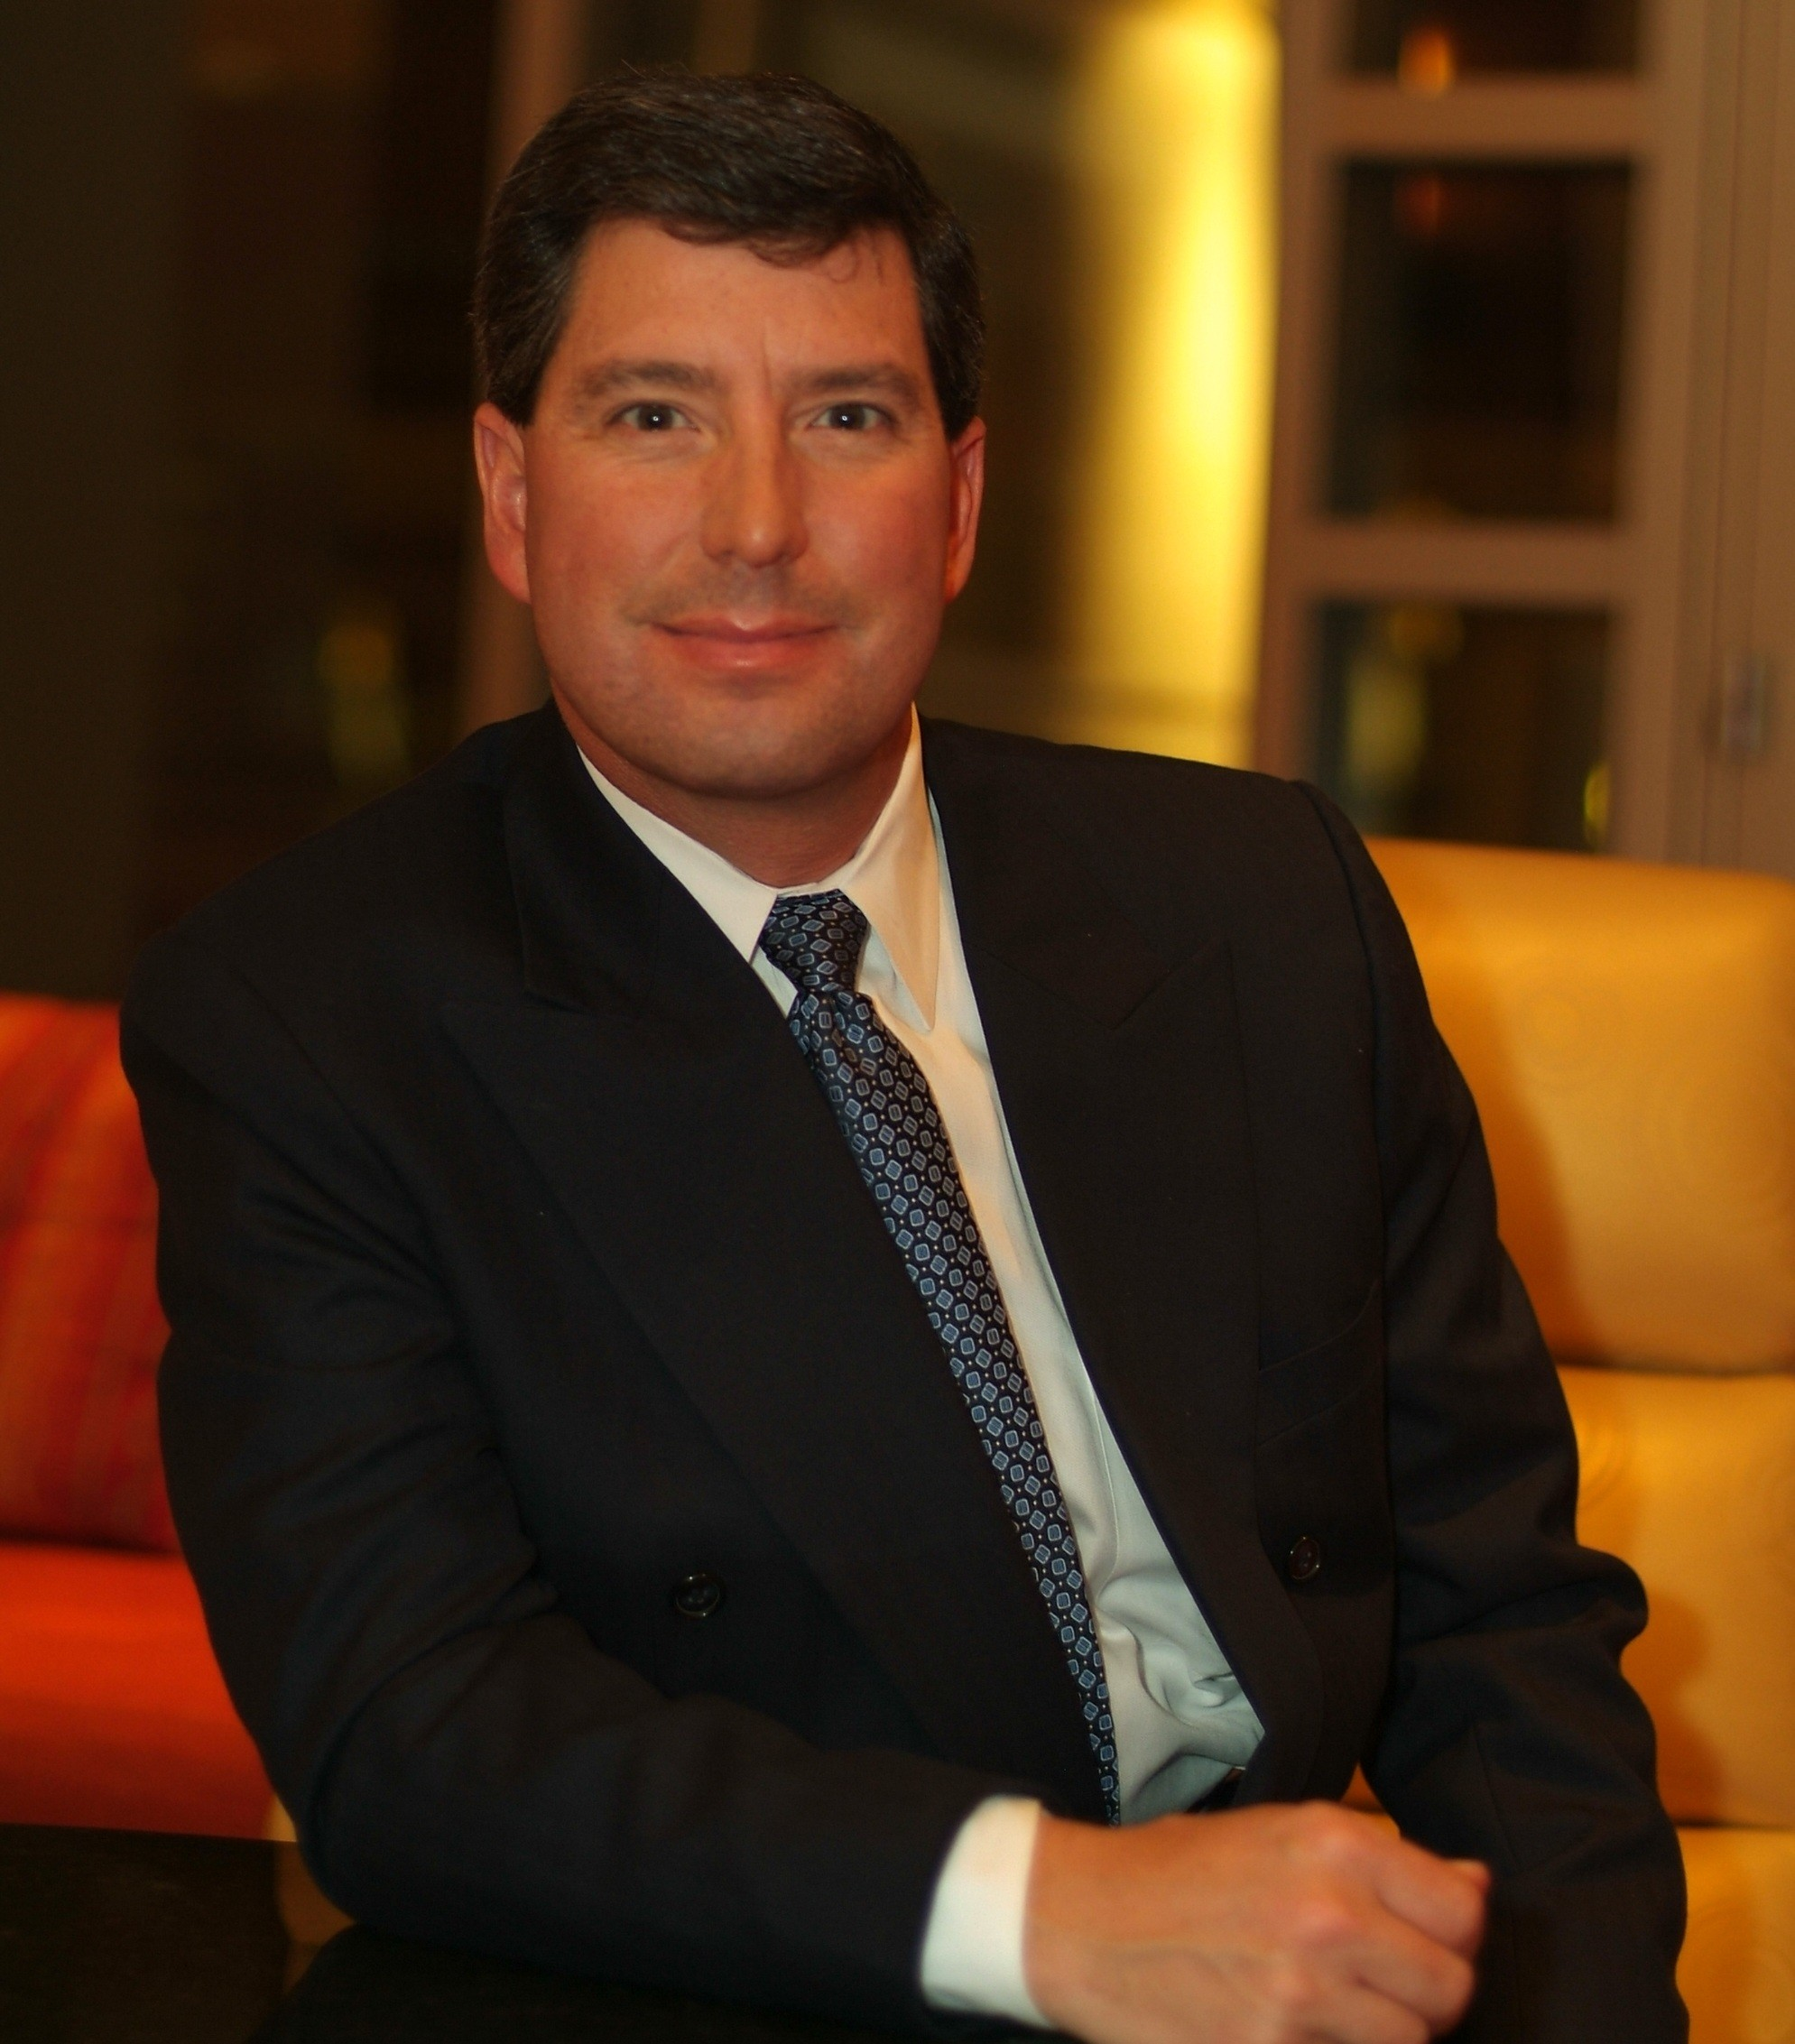 Jeffrey R. Armstrong, Owner/President